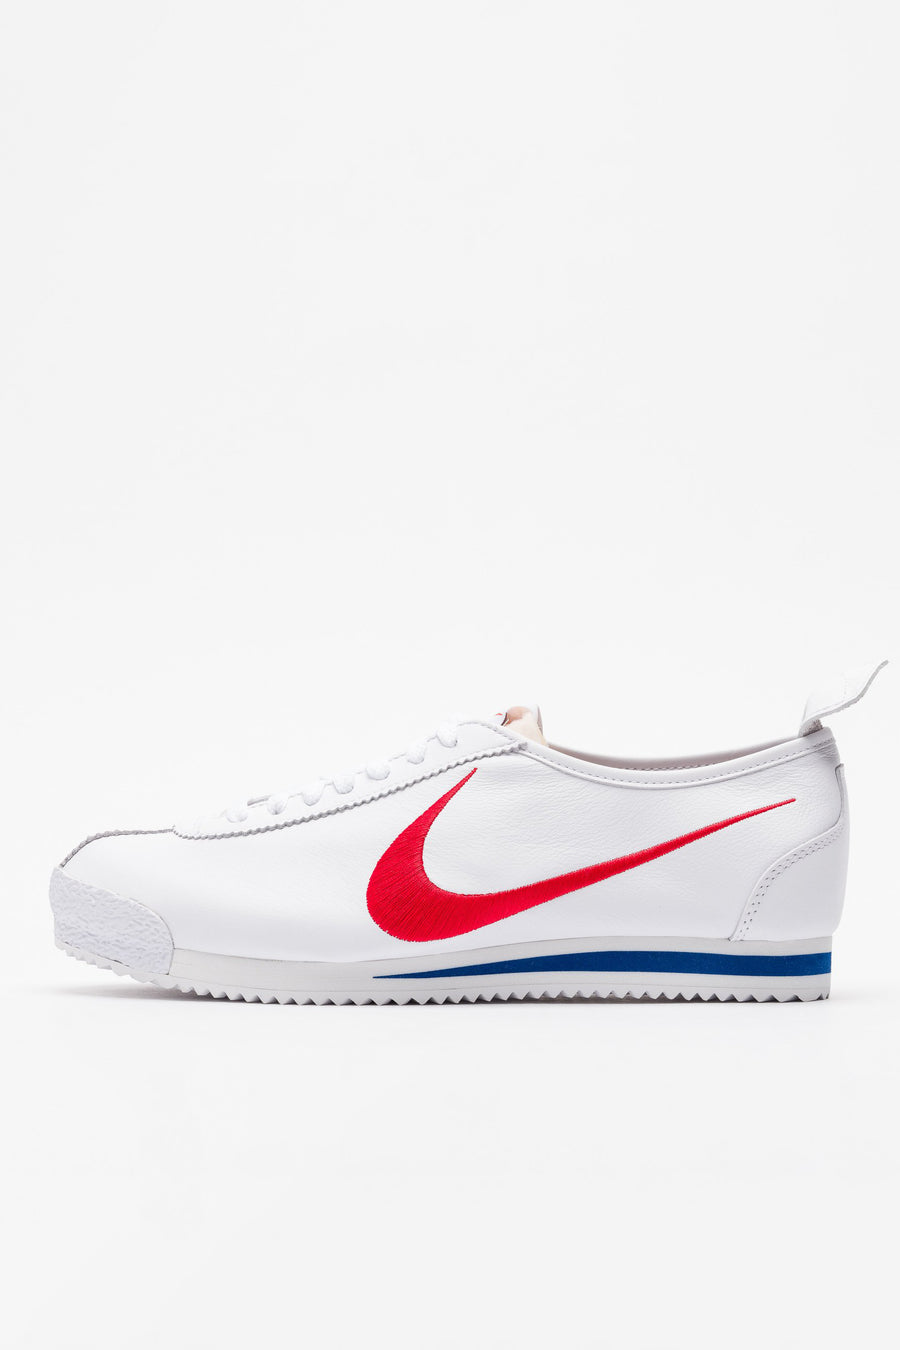 cheap for discount 9e6ff ff61d Cortez 72 SD in White/Red/Royal